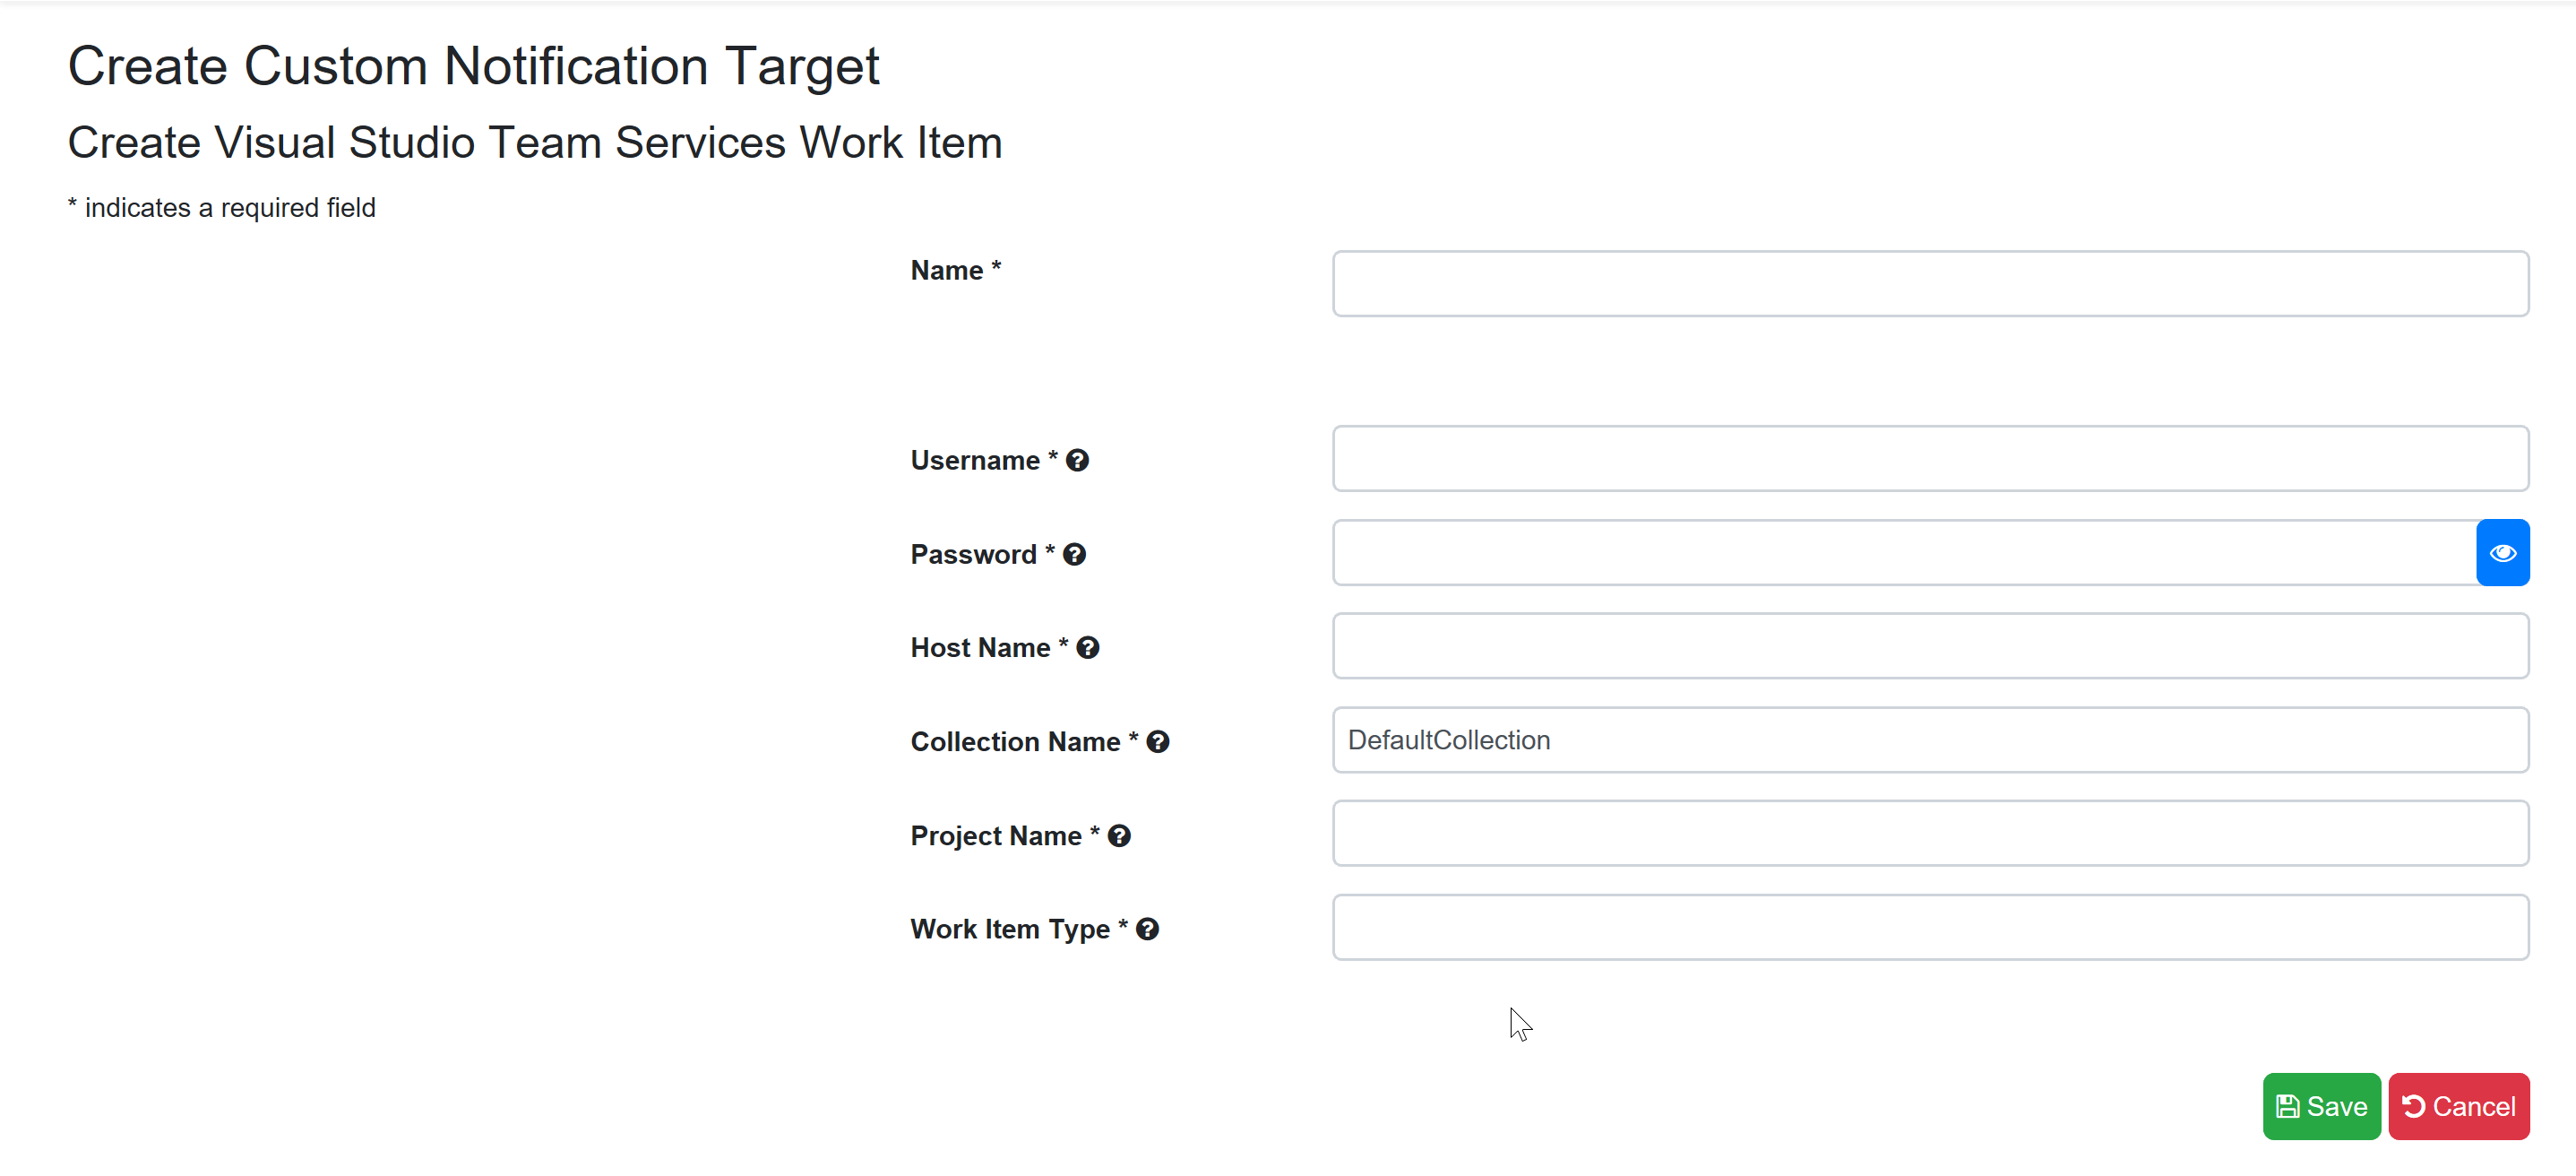 SentryOne Test Create Visual Studio Team Services Work Item Target form